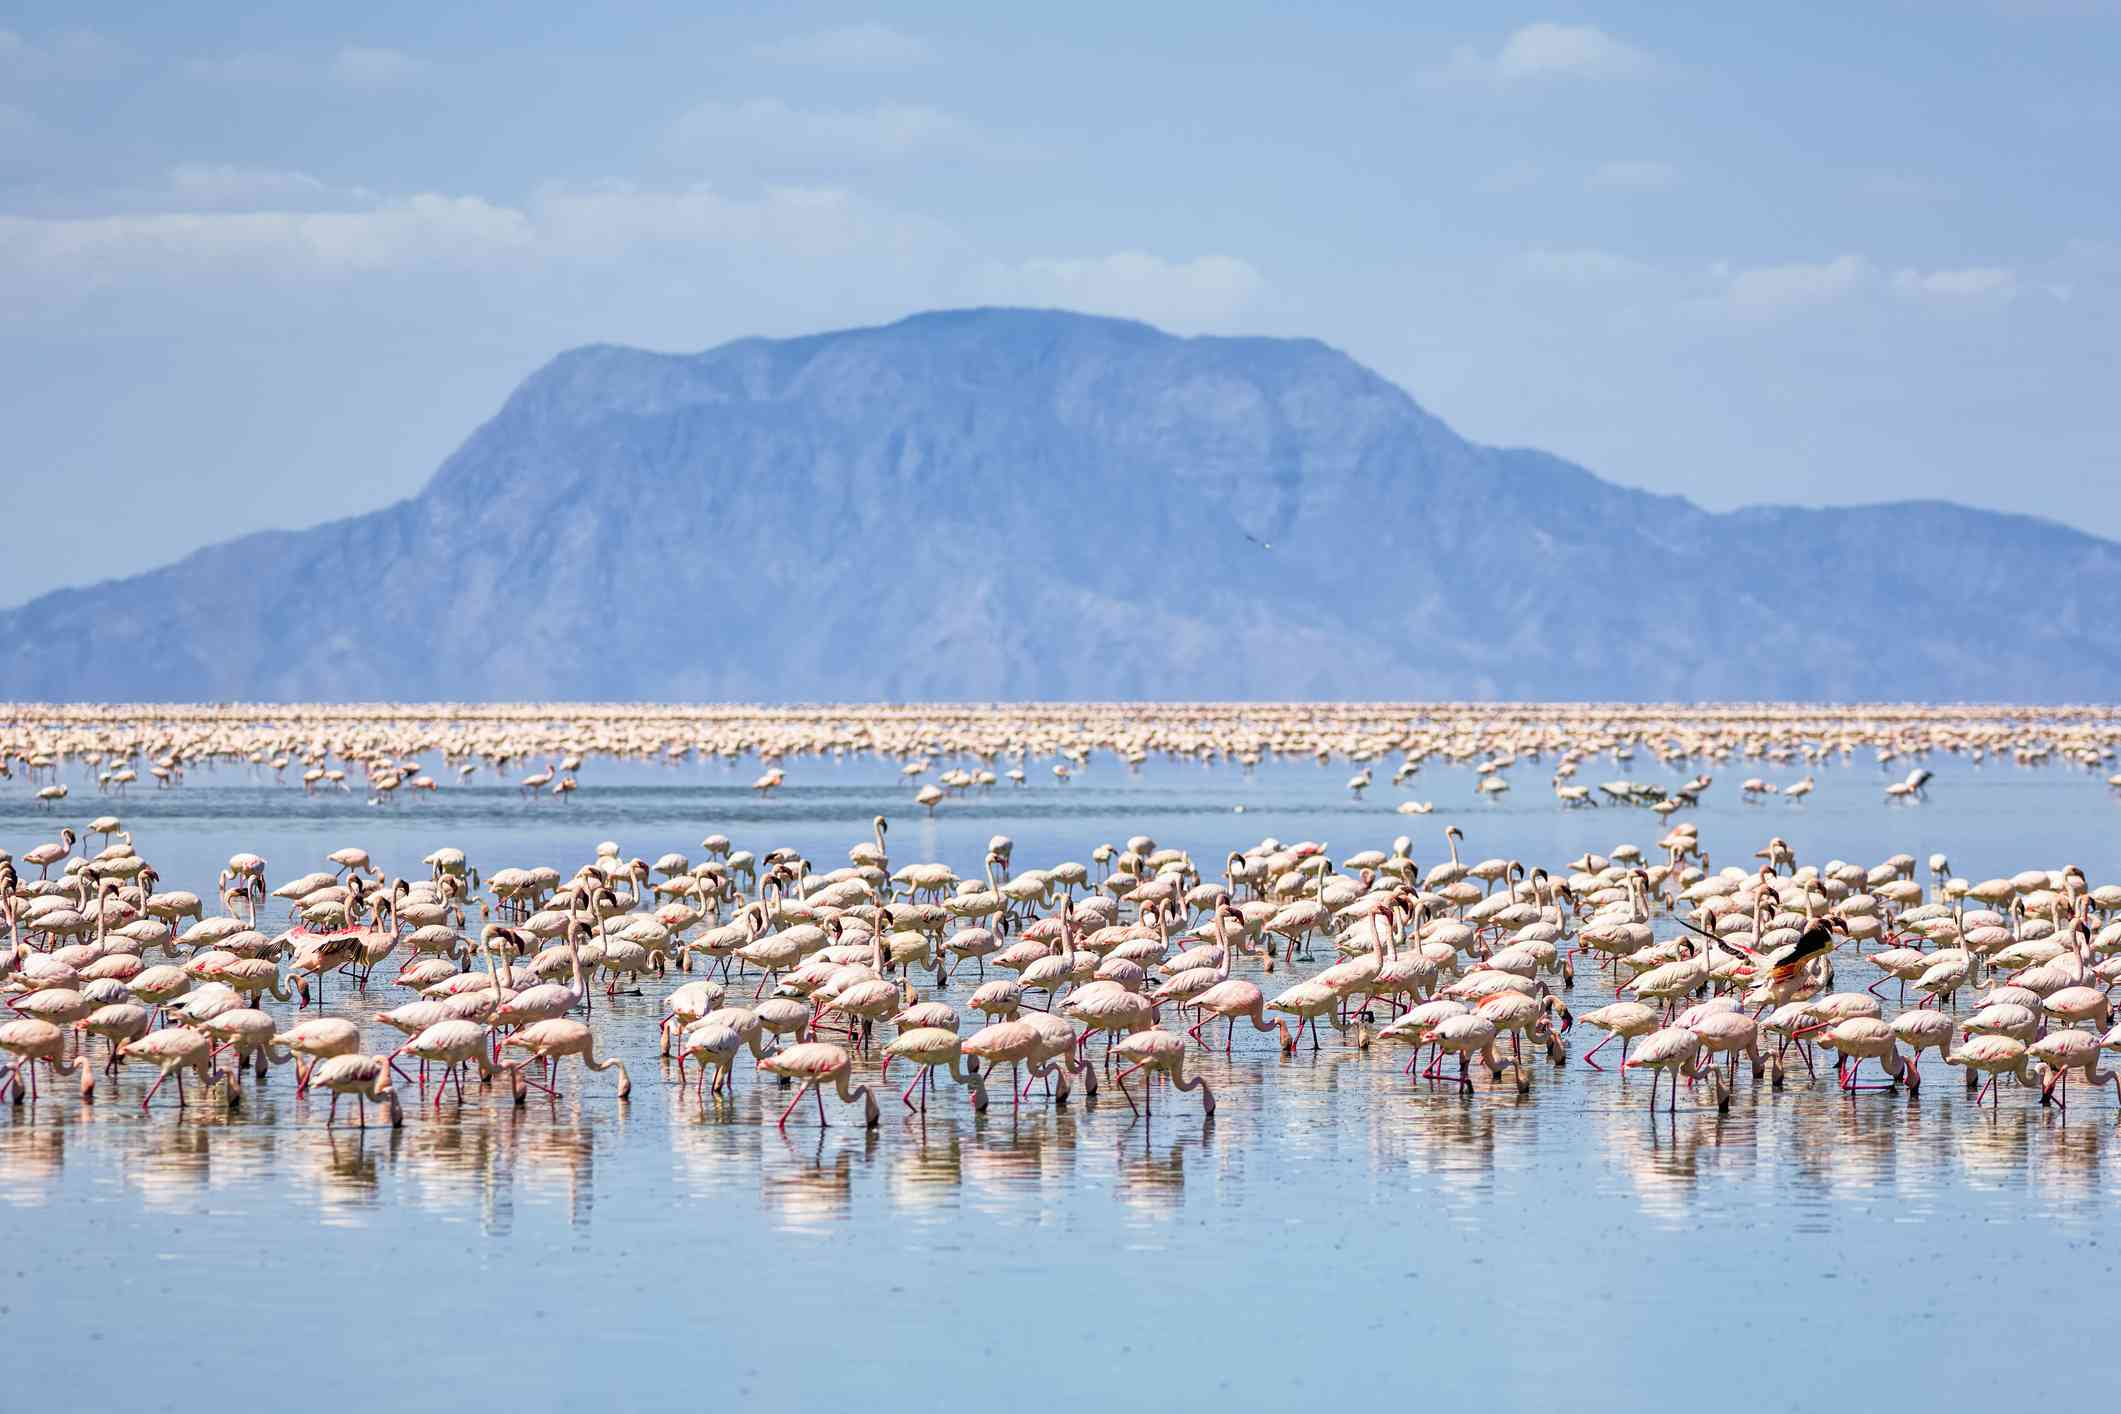 Flamingos in a lake with a mountain in the background.